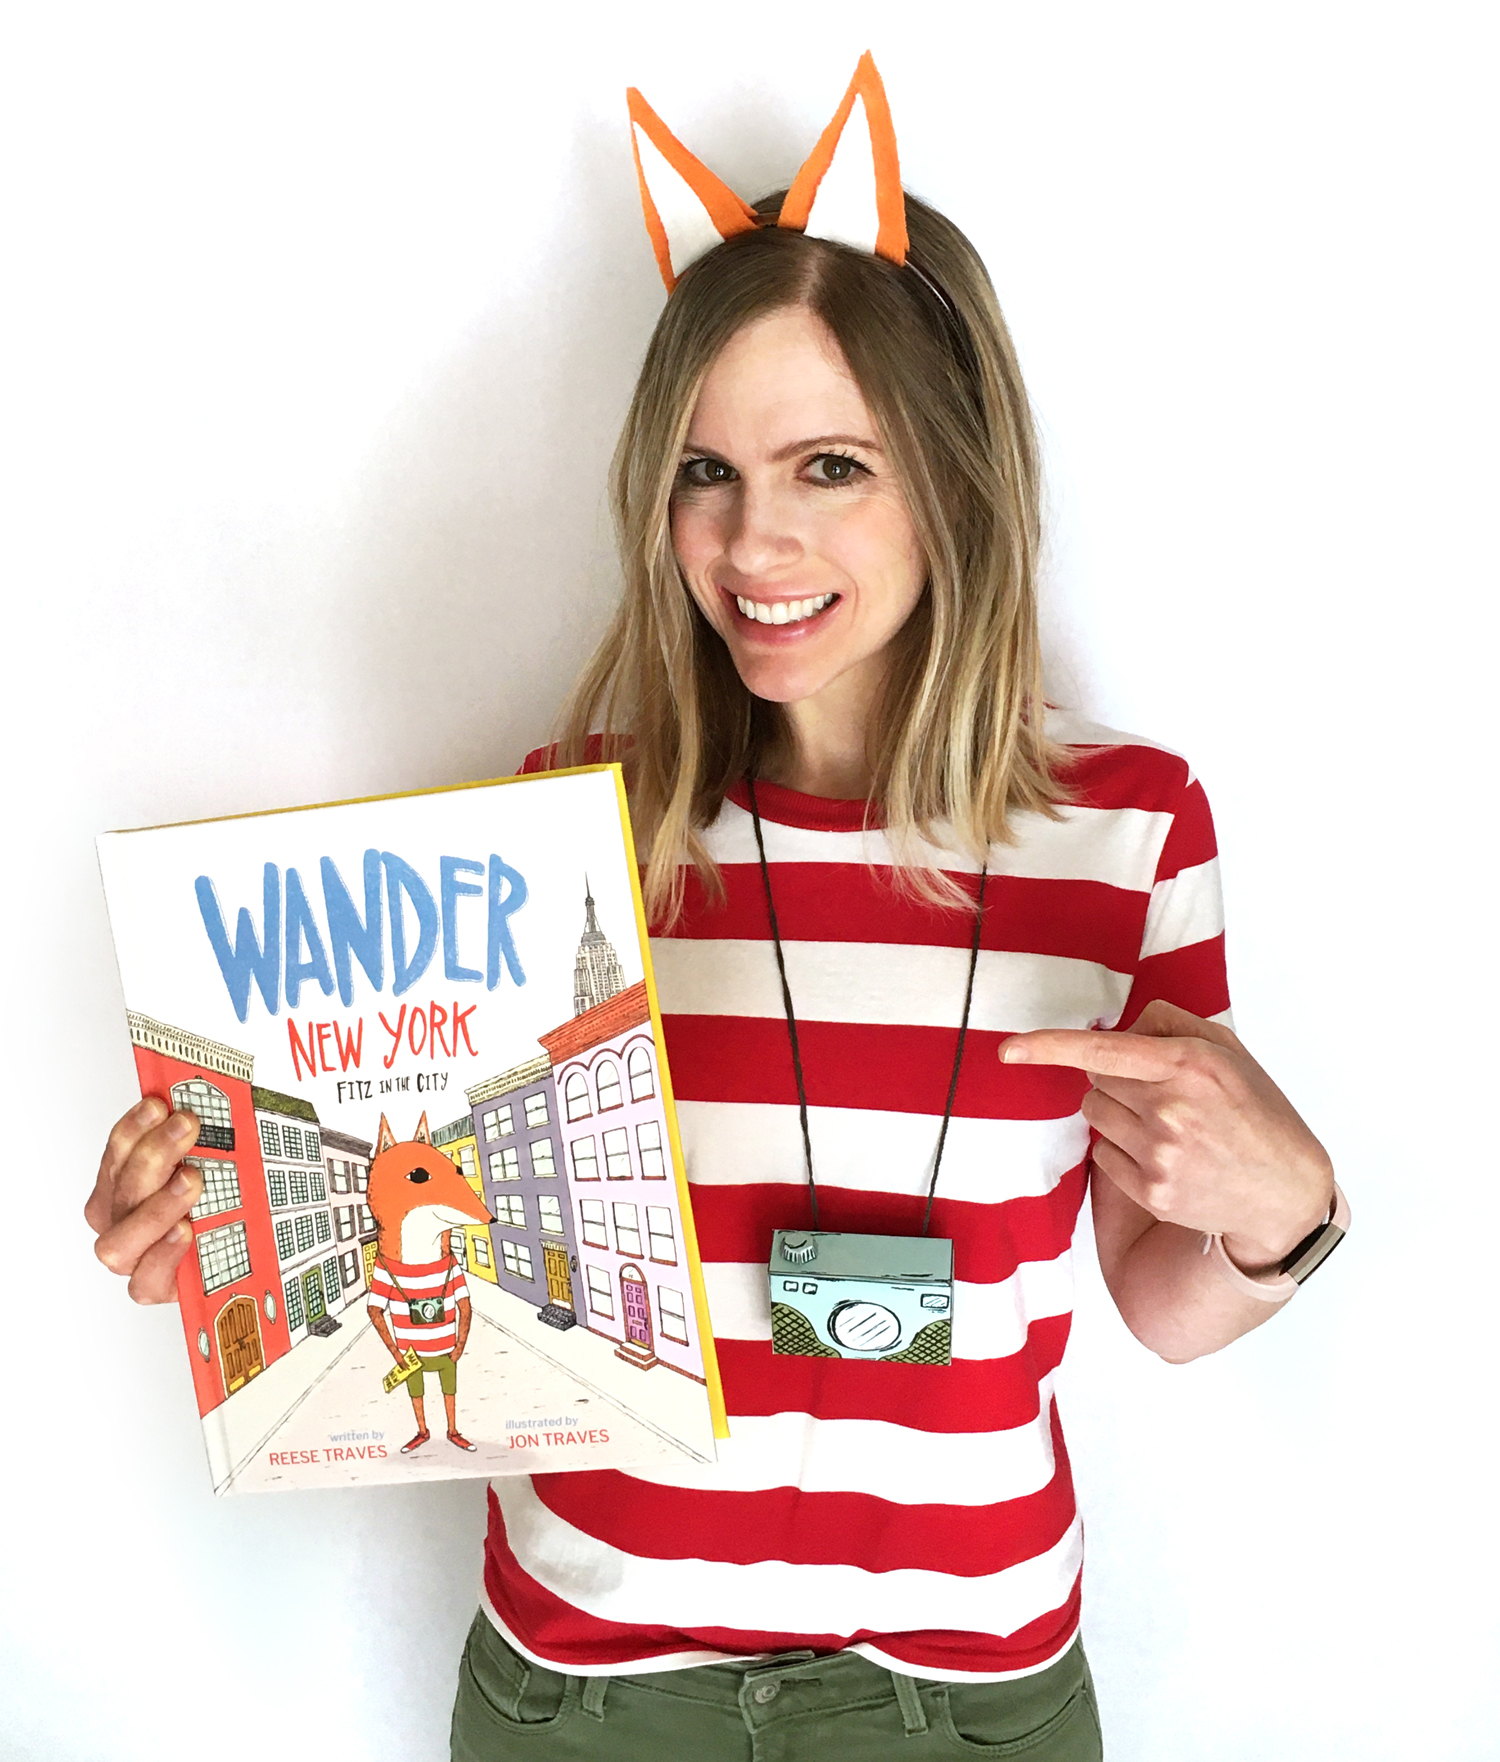 wander new york costume, children's picture book costume, fitz the fox costume, kids book and costume idea, diy world book day costume for kids and teachers, book week costume ideas, fox costume